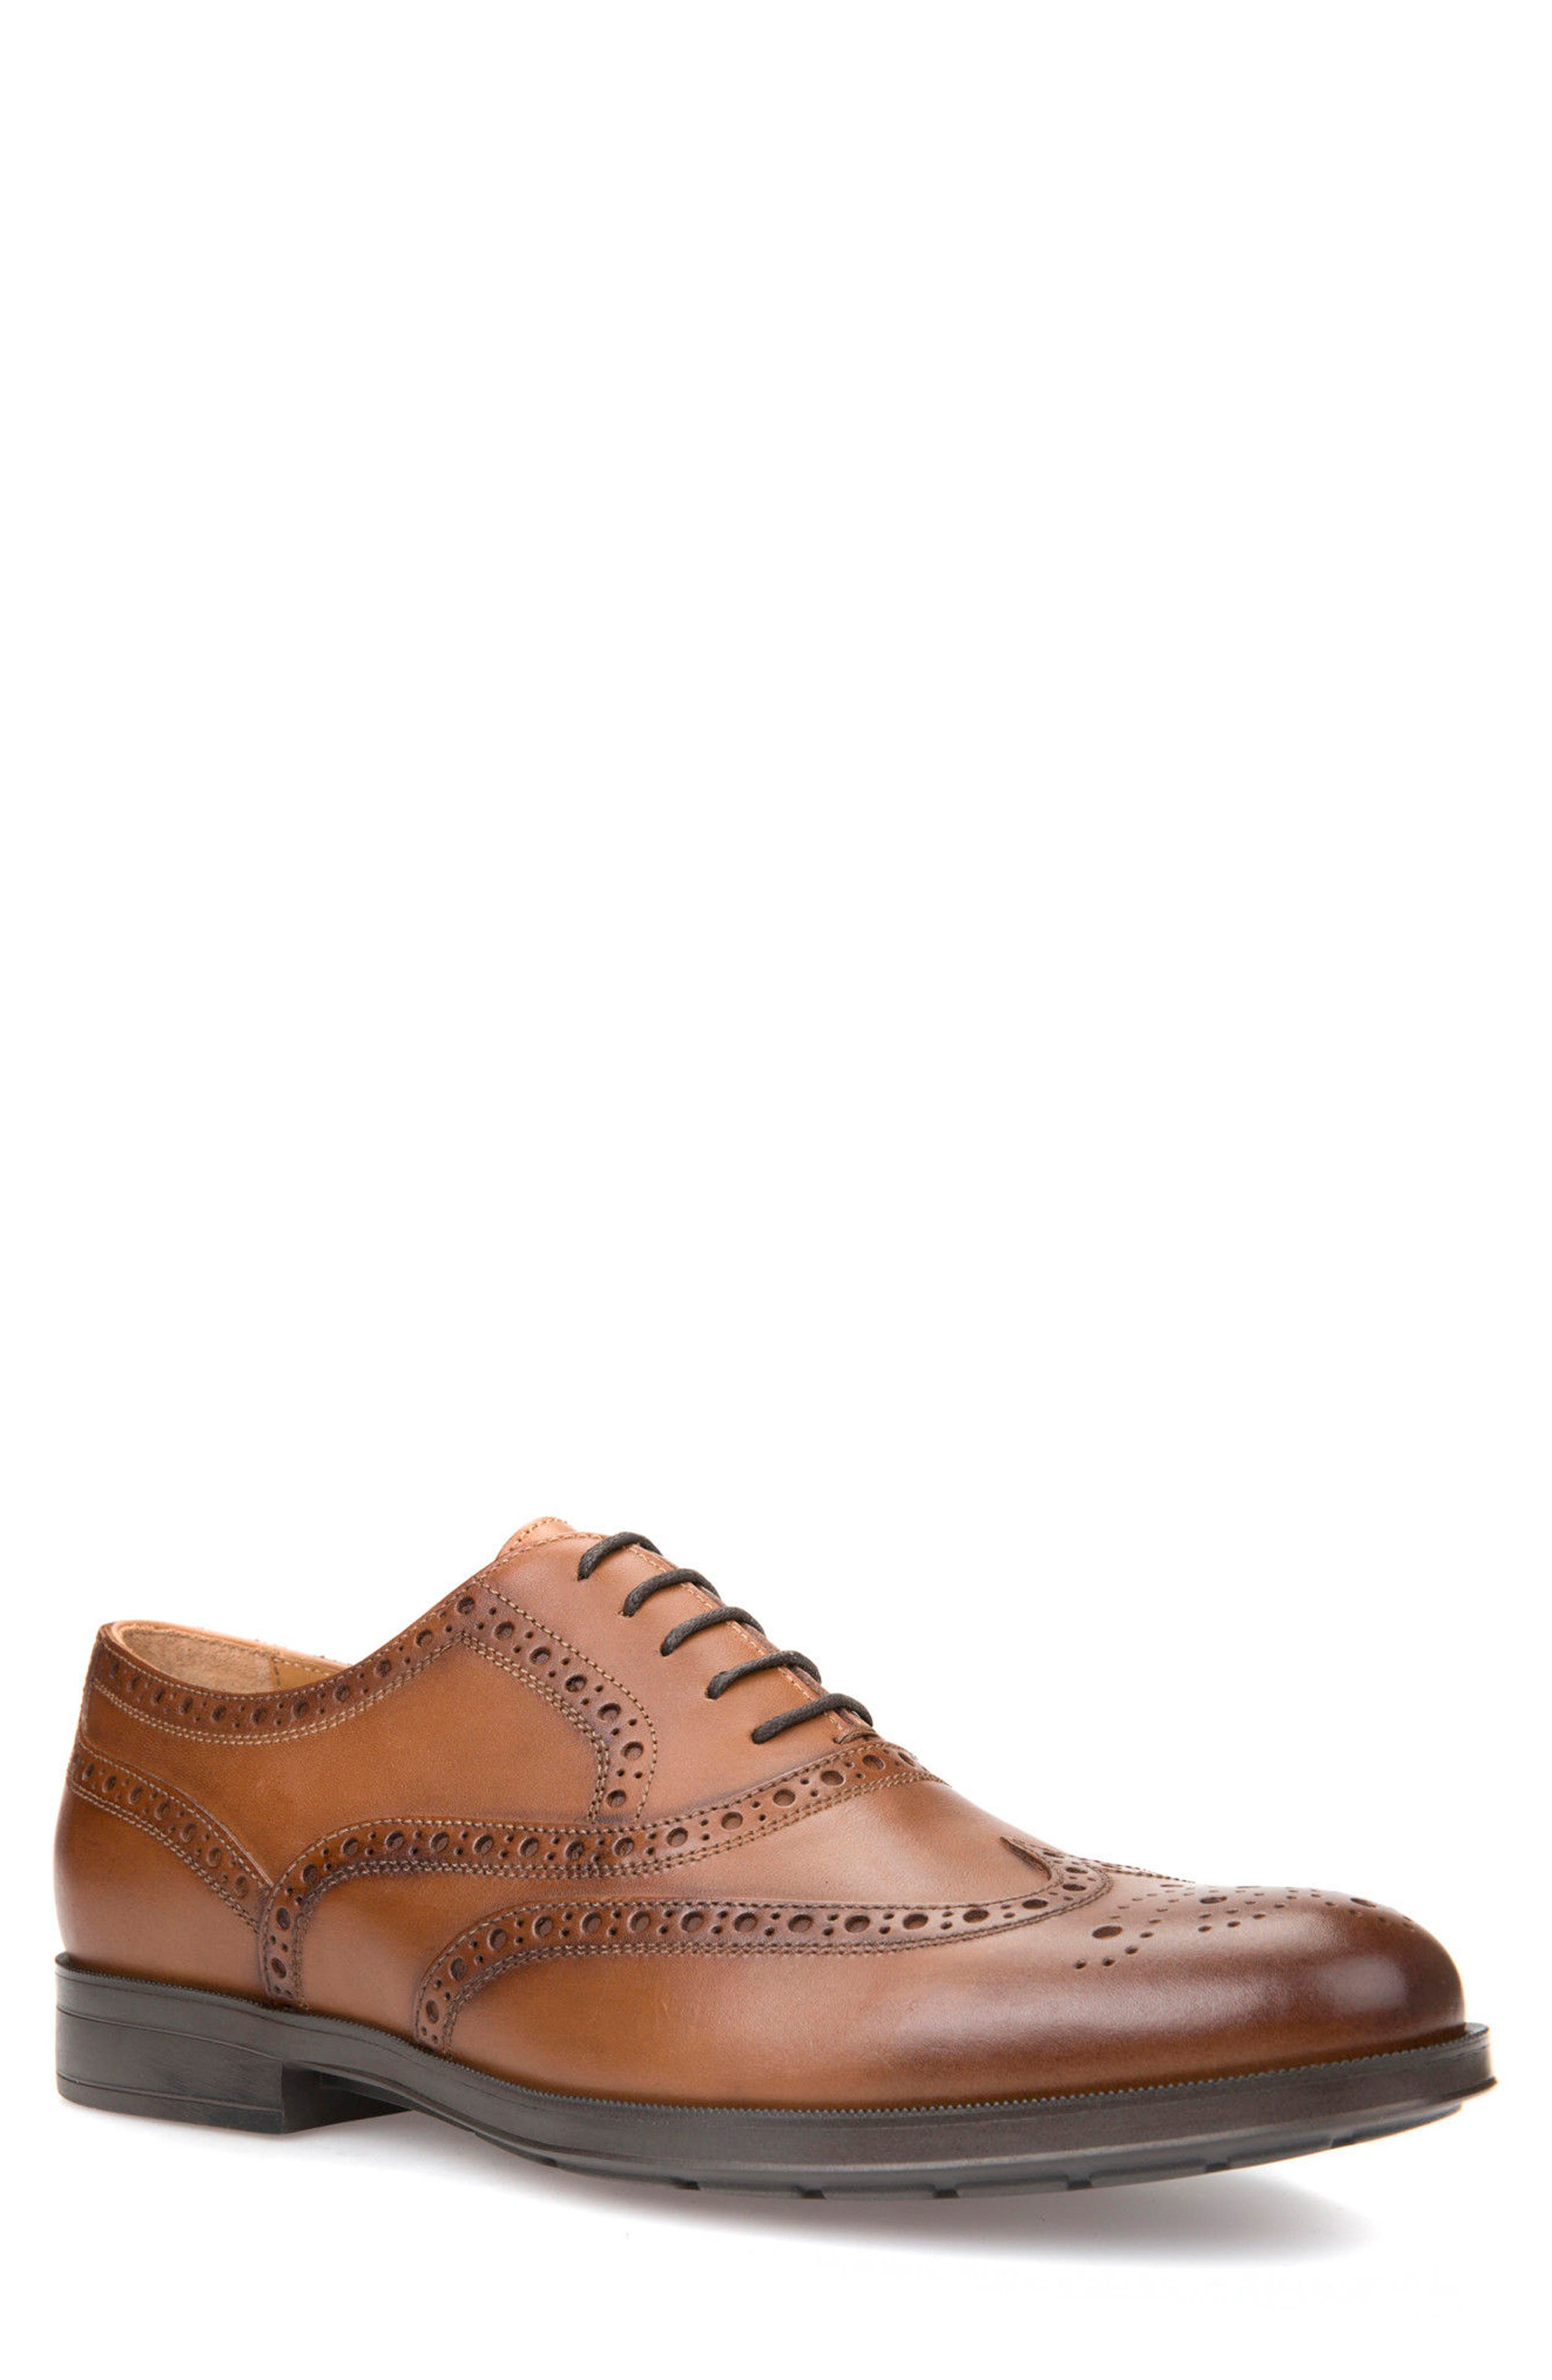 Hilstone 2Fit 2 Wingtip Oxford,                         Main,                         color, Cognac Leather